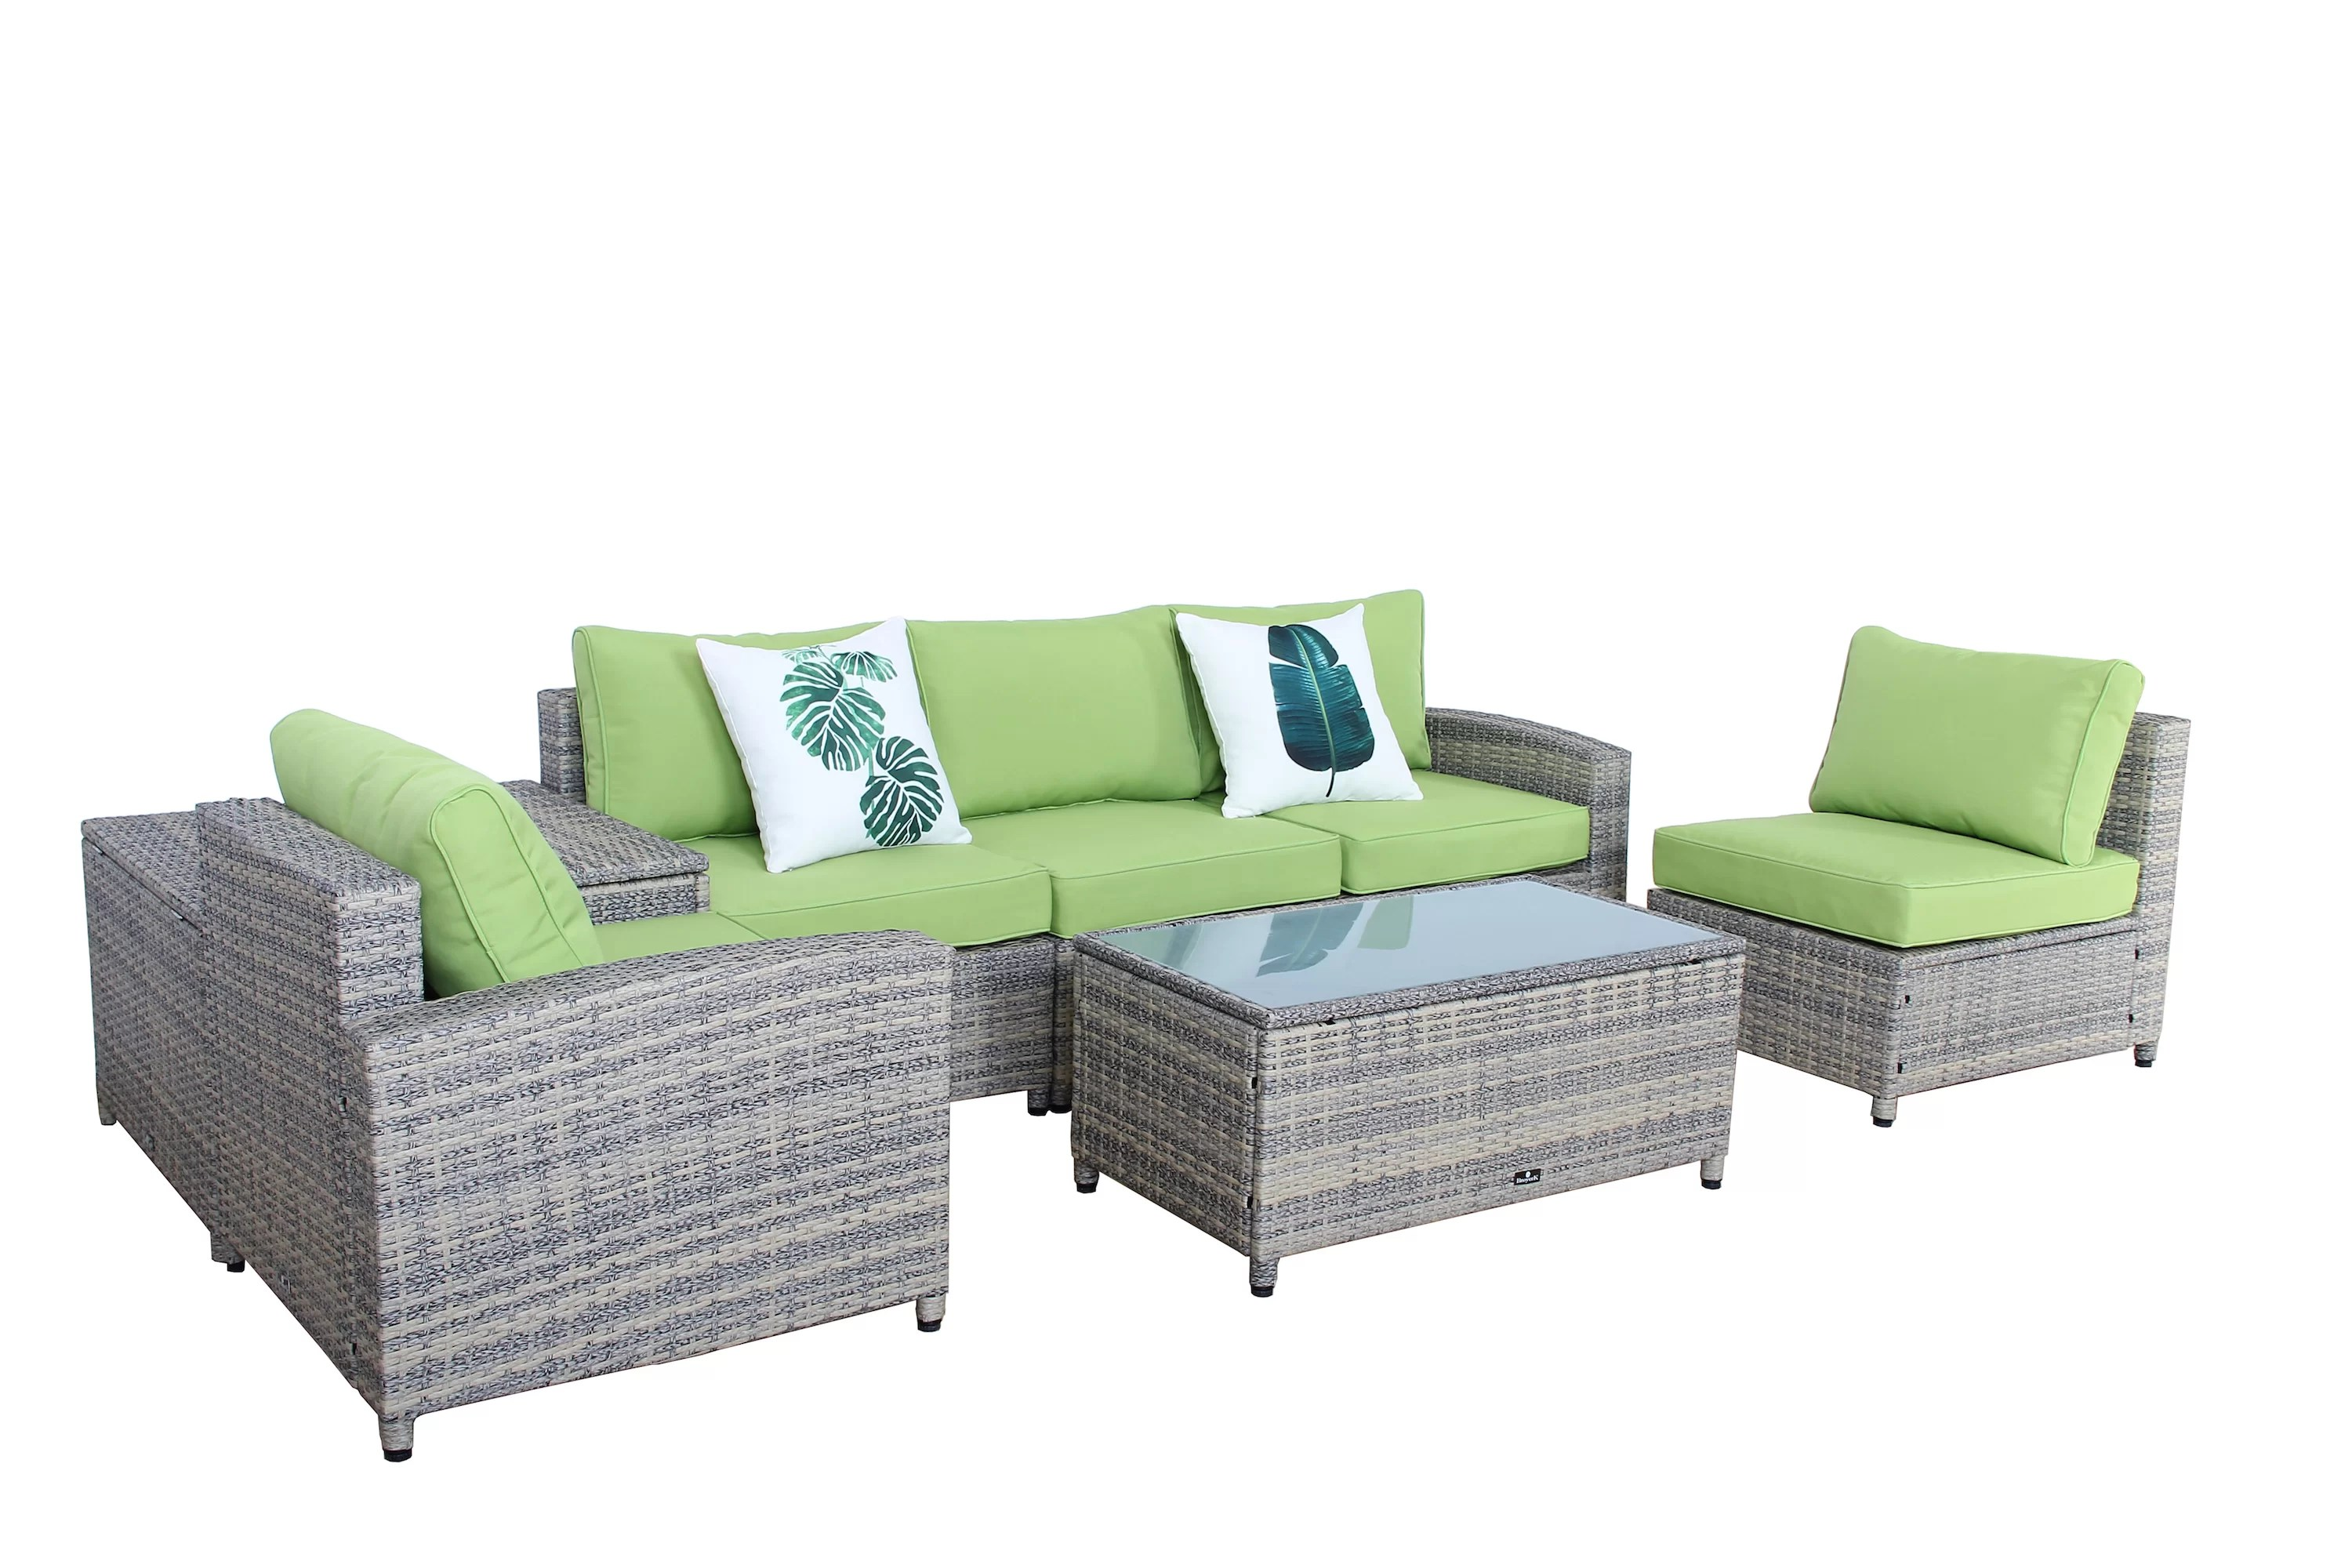 Sofa Rattan Ingrid 7 Piece Rattan Sofa Set With Cushions